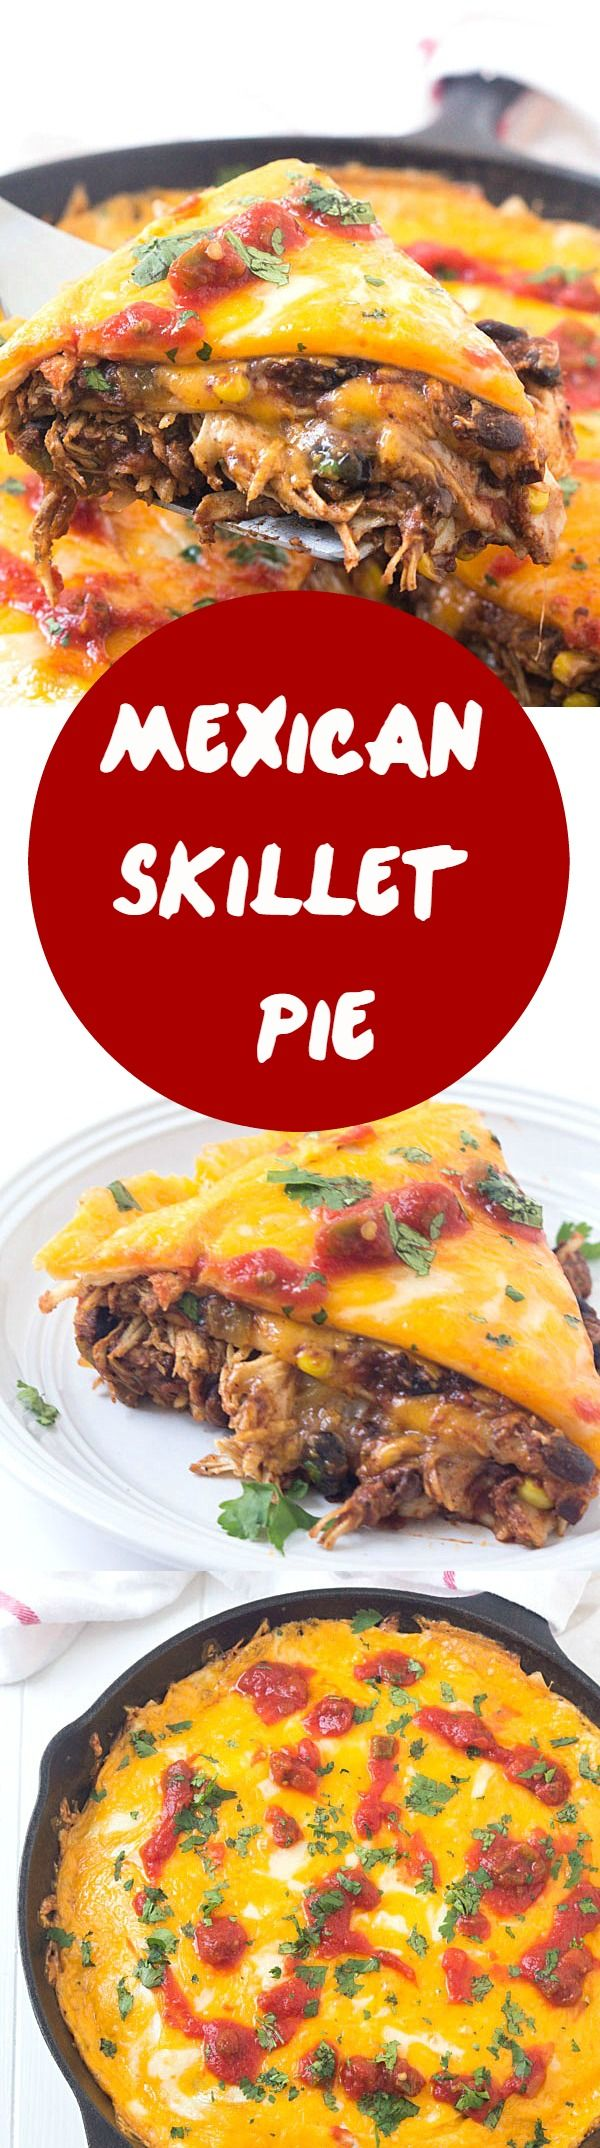 Mexican Skillet Pie - Layered with tortillas, homemade enchilada sauce ...